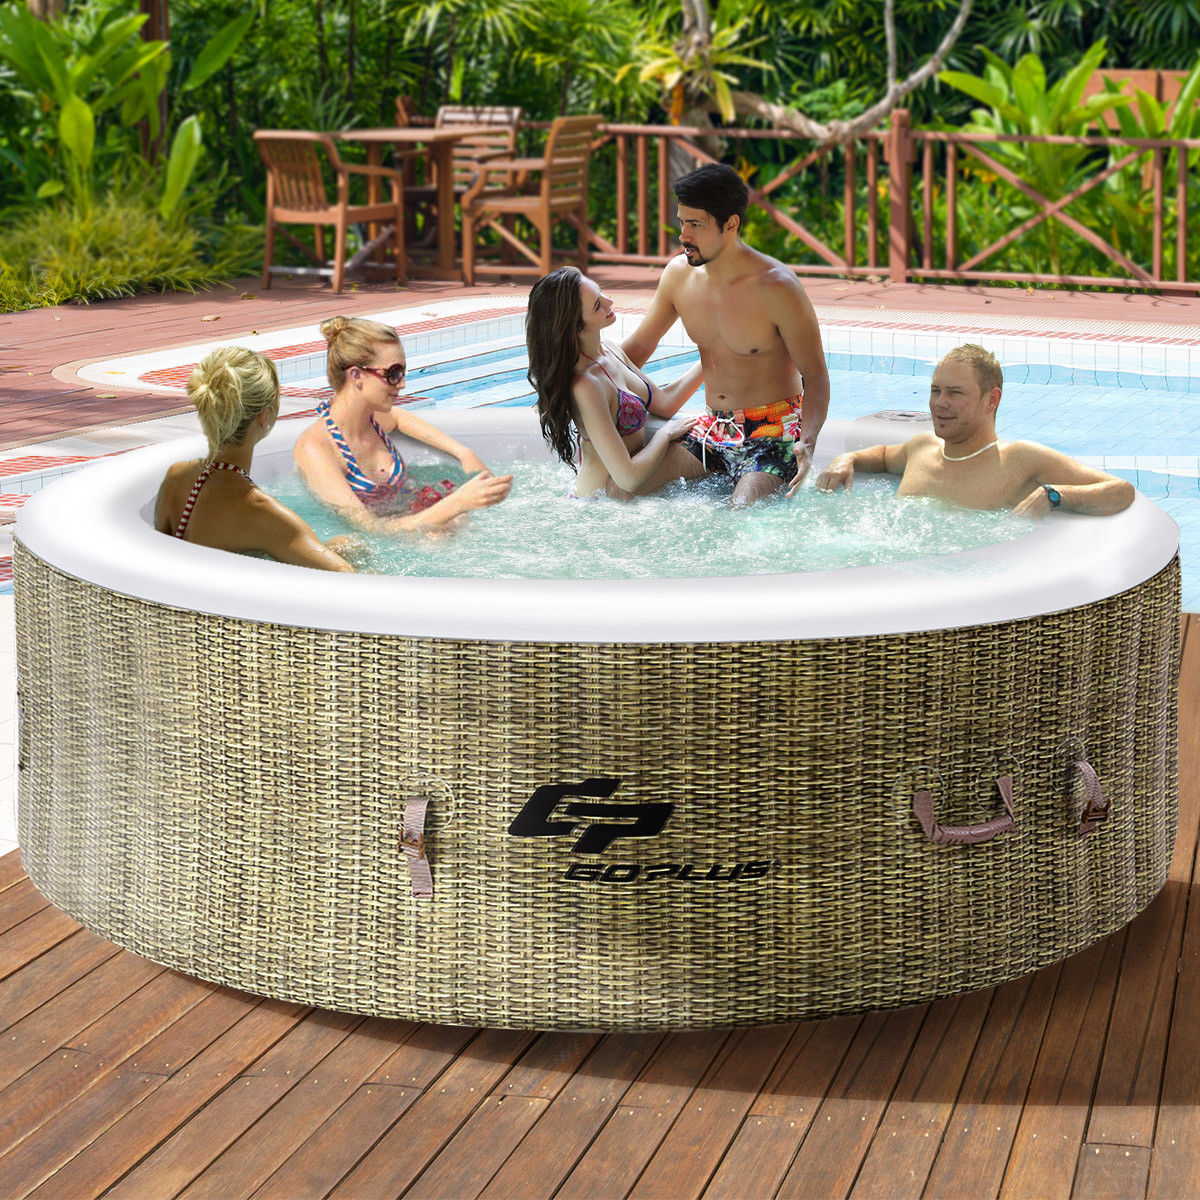 Goplus 6 Person Inflatable Hot Tub Outdoor Jets Portable Heated Bubble Massage Spa by Costway